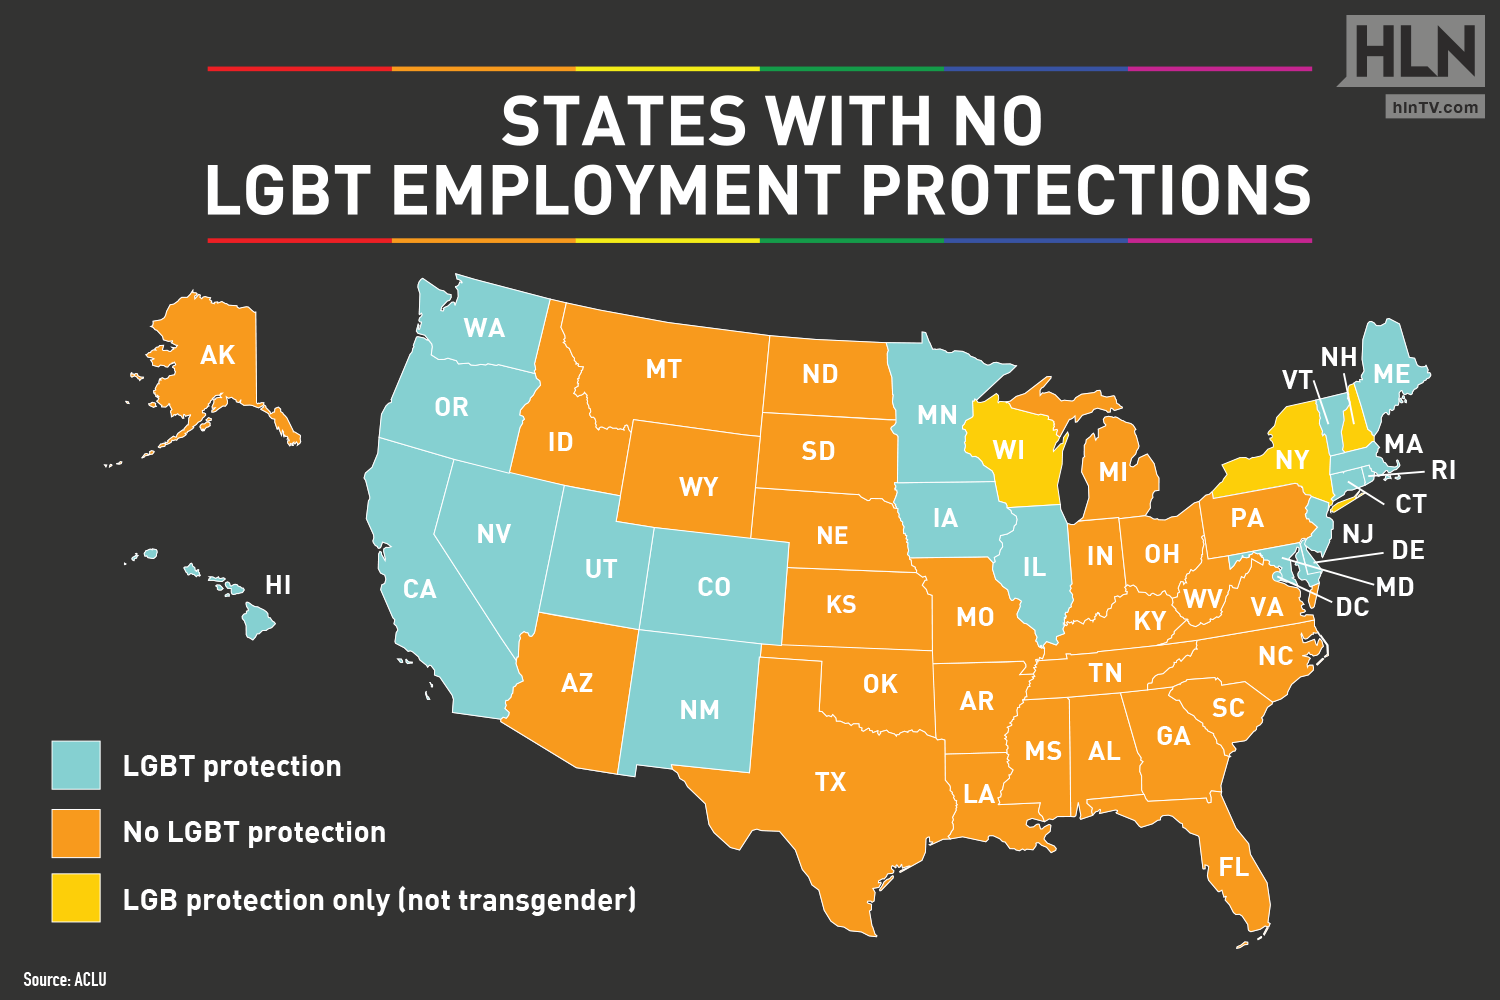 States With No LGBT Employment Protections